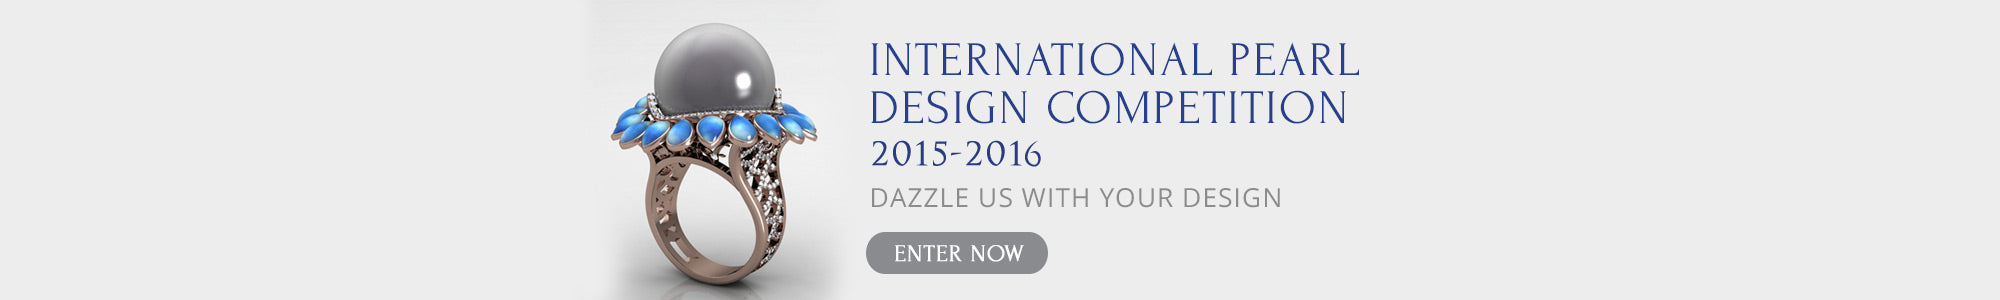 International Pearl Design Competition 2015